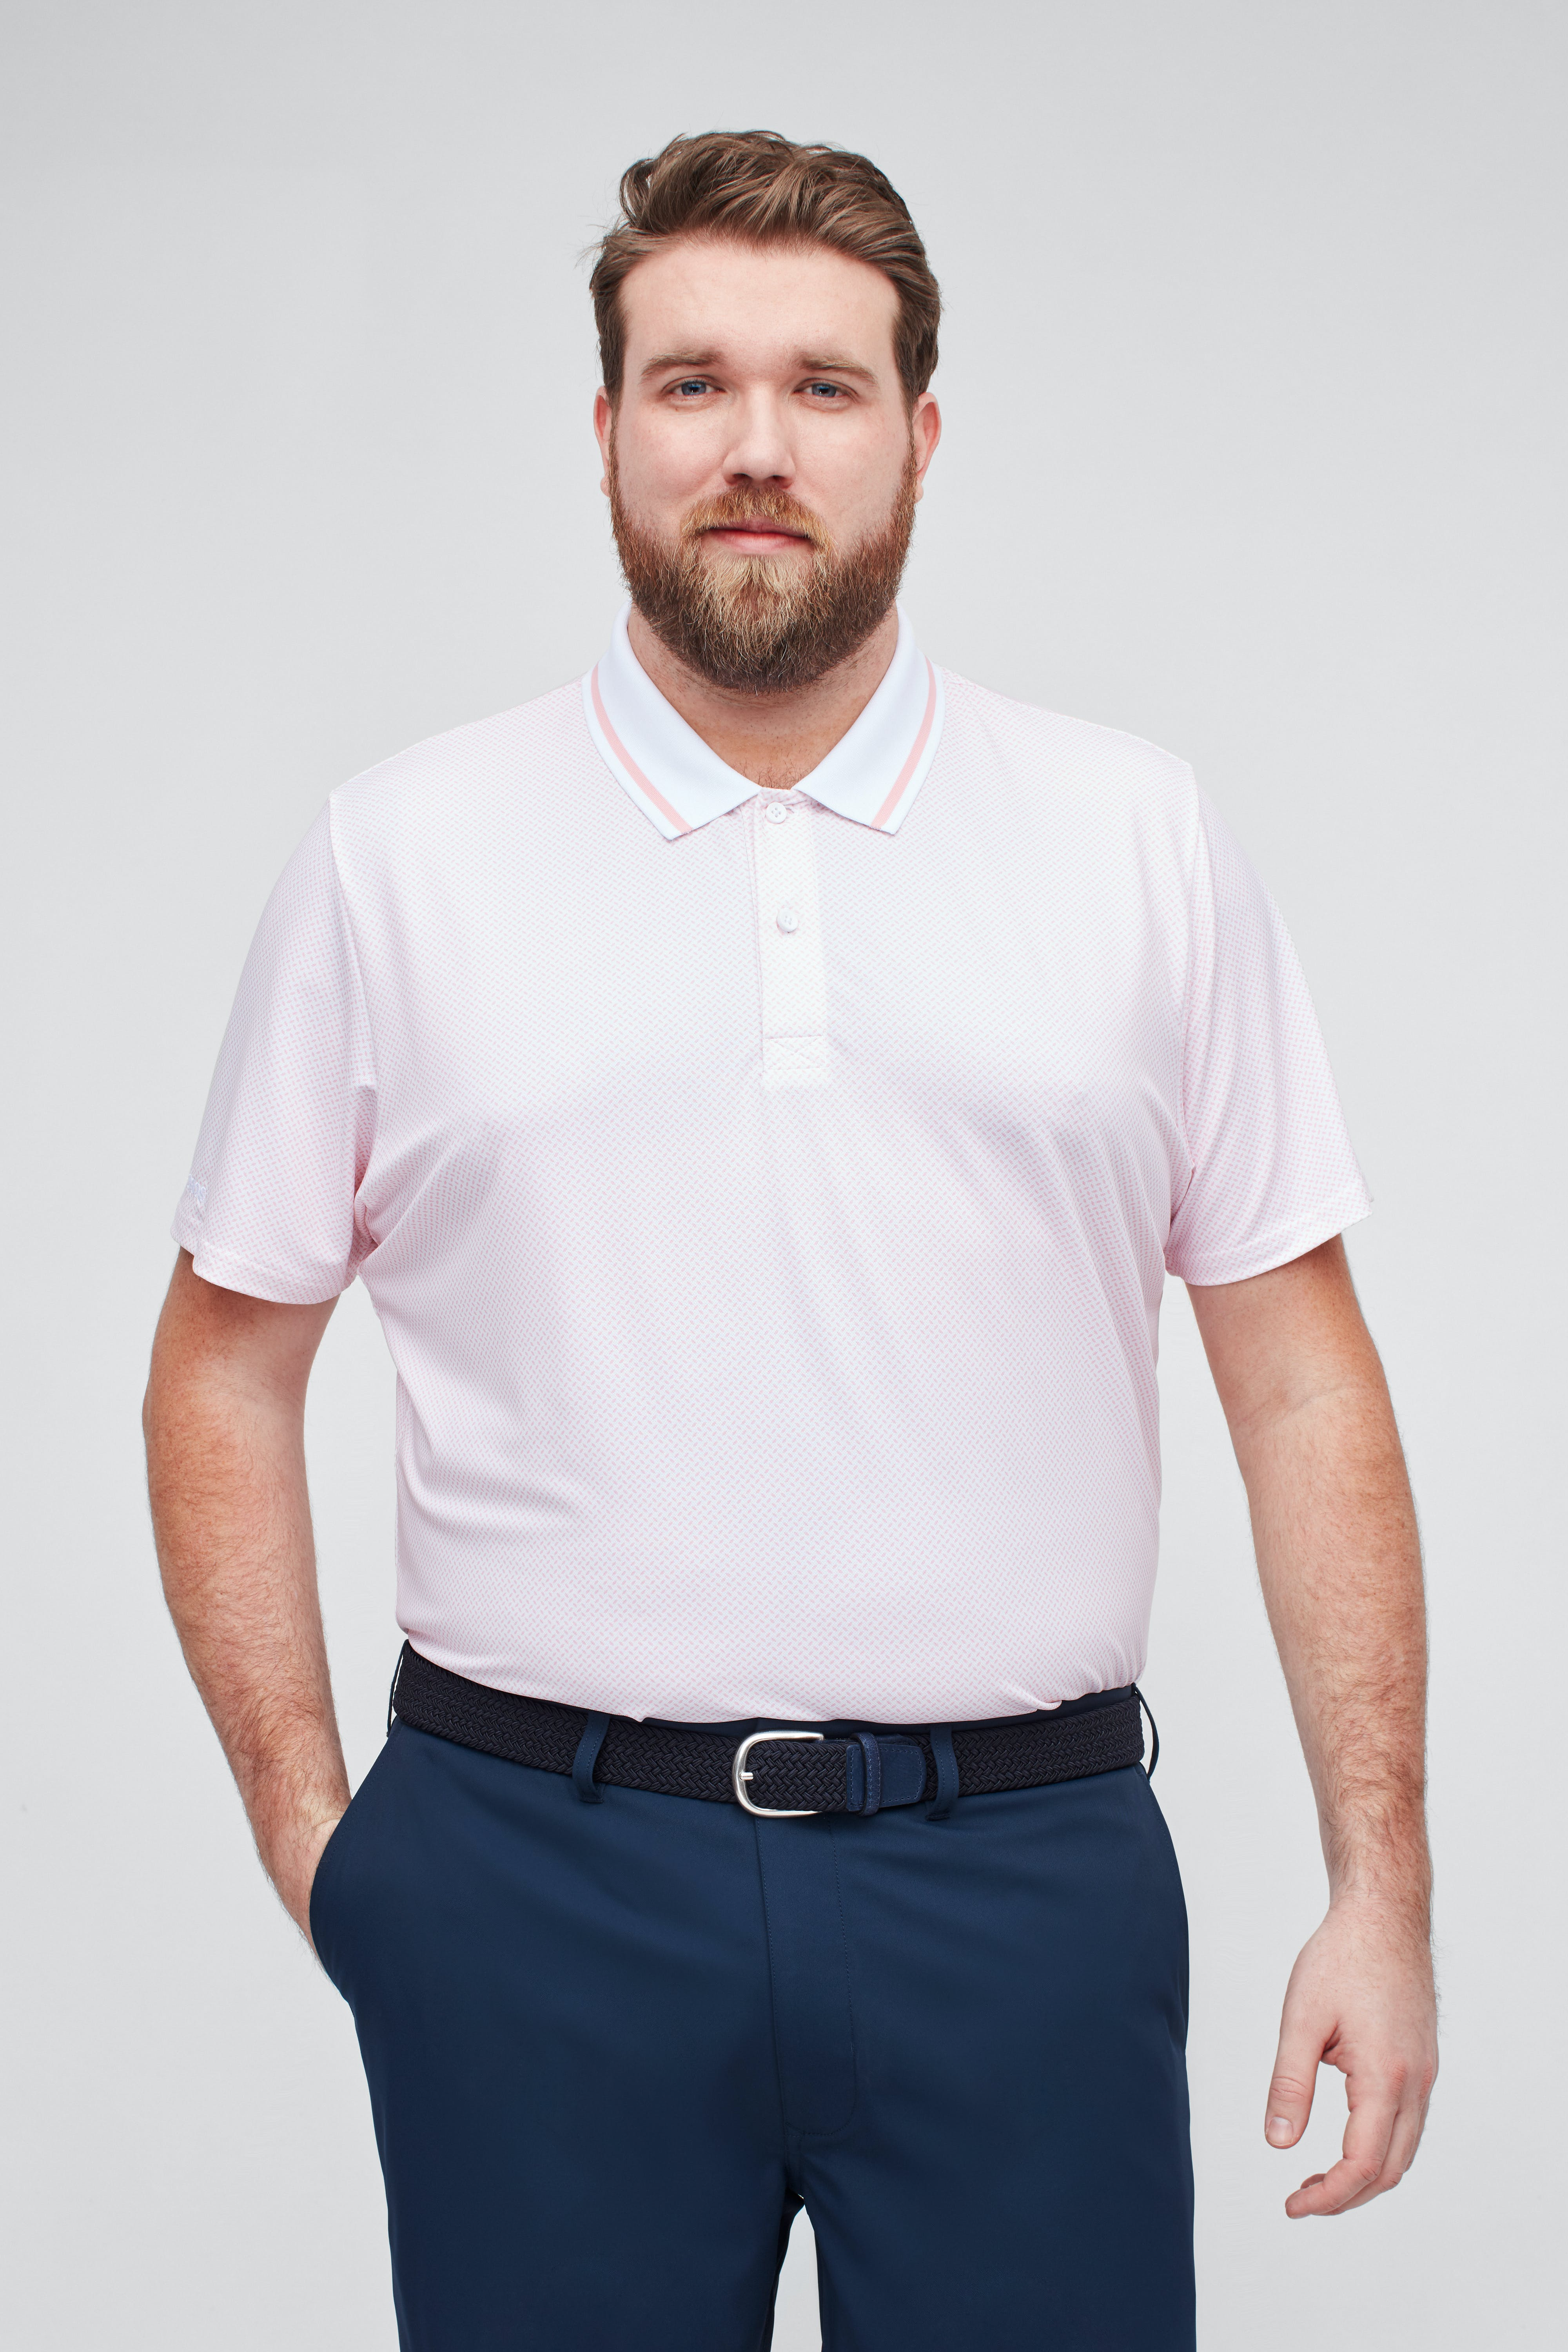 The Performance Golf Polo Extended Sizes